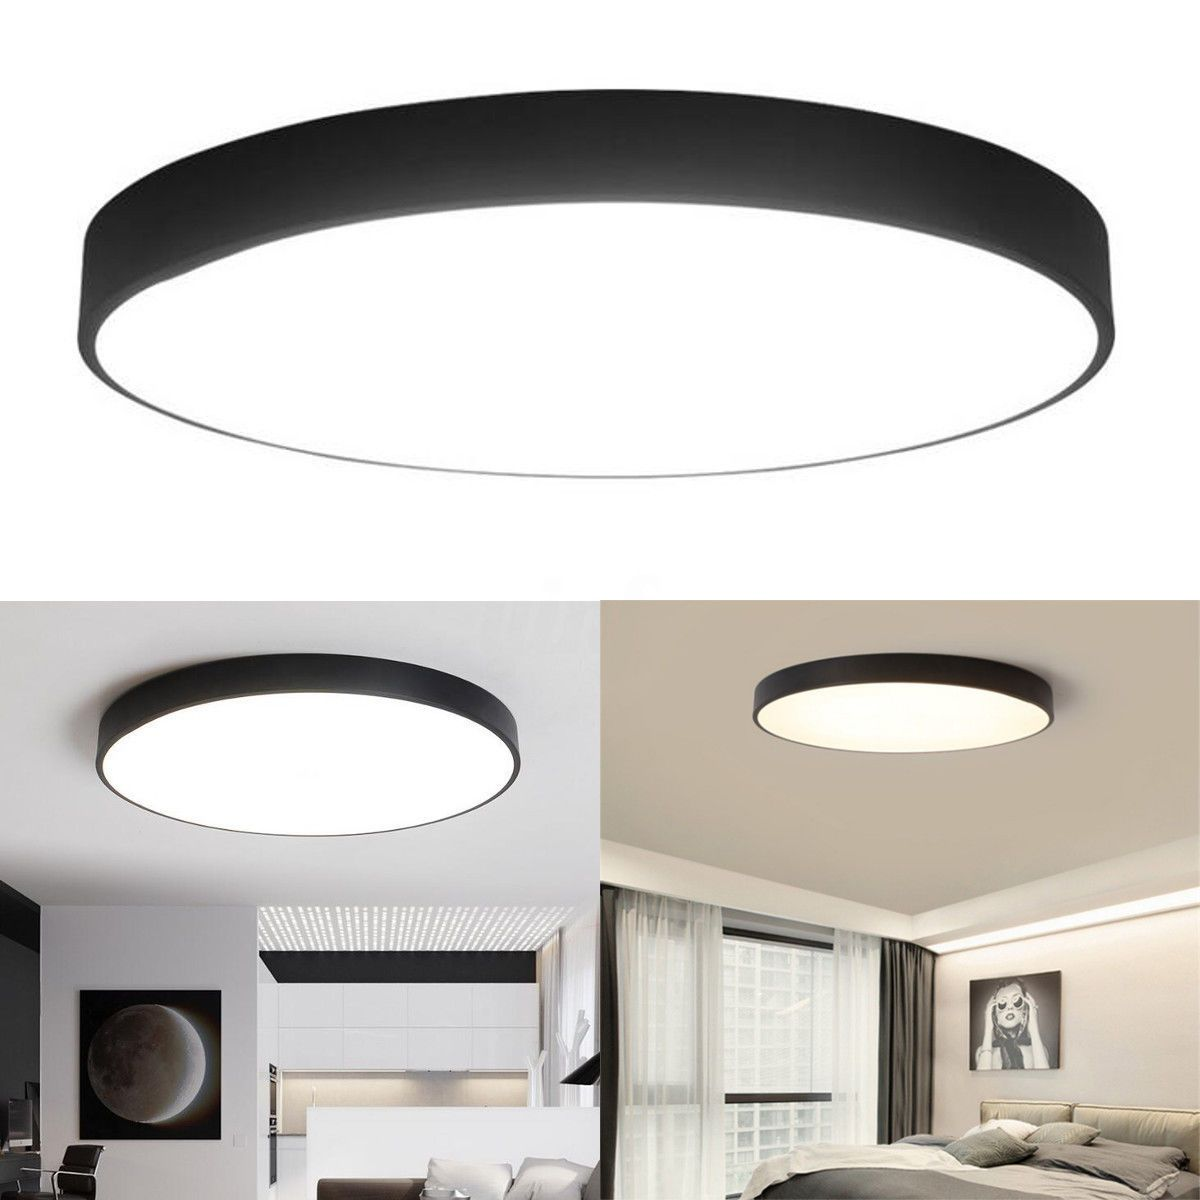 Modern Led Round Ceiling Lamp Light Fixture Home Bedroom Decoration 5cm Thick Bedroom Ceiling Light Led Ceiling Lights Ceiling Lights